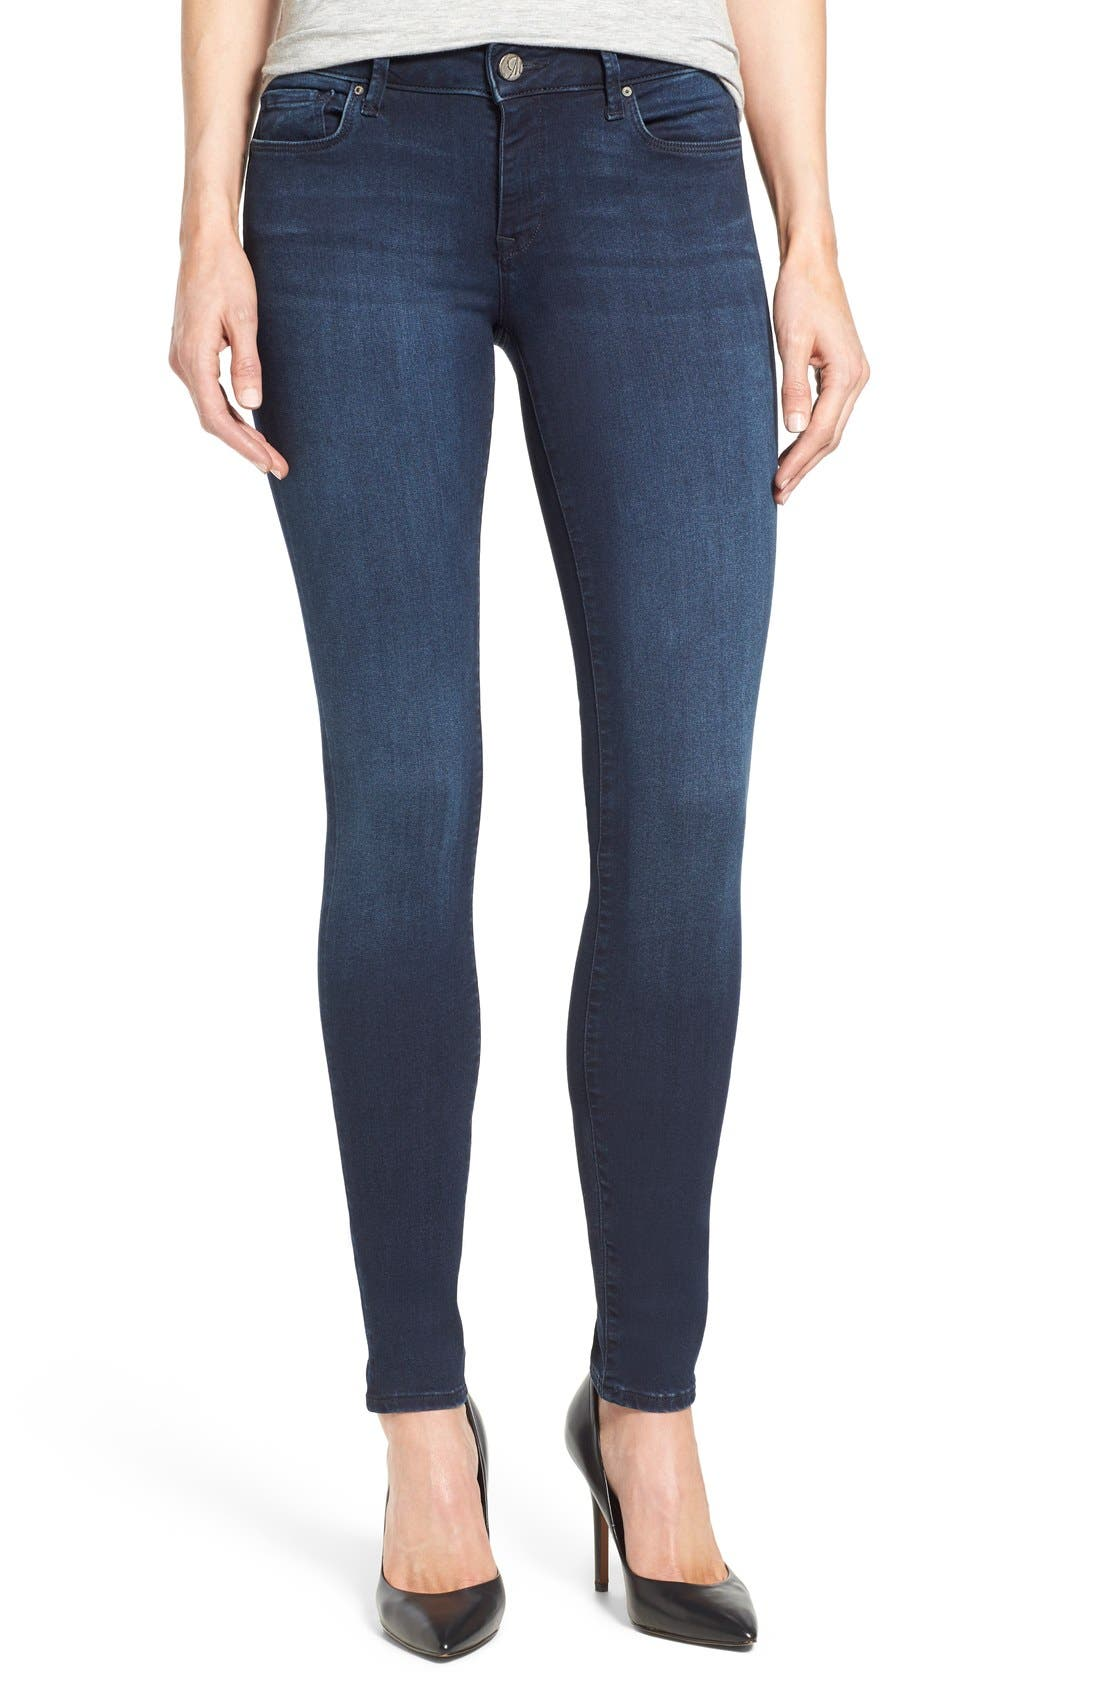 'Adriana' Stretch Skinny Jeans,                             Main thumbnail 1, color,                             401